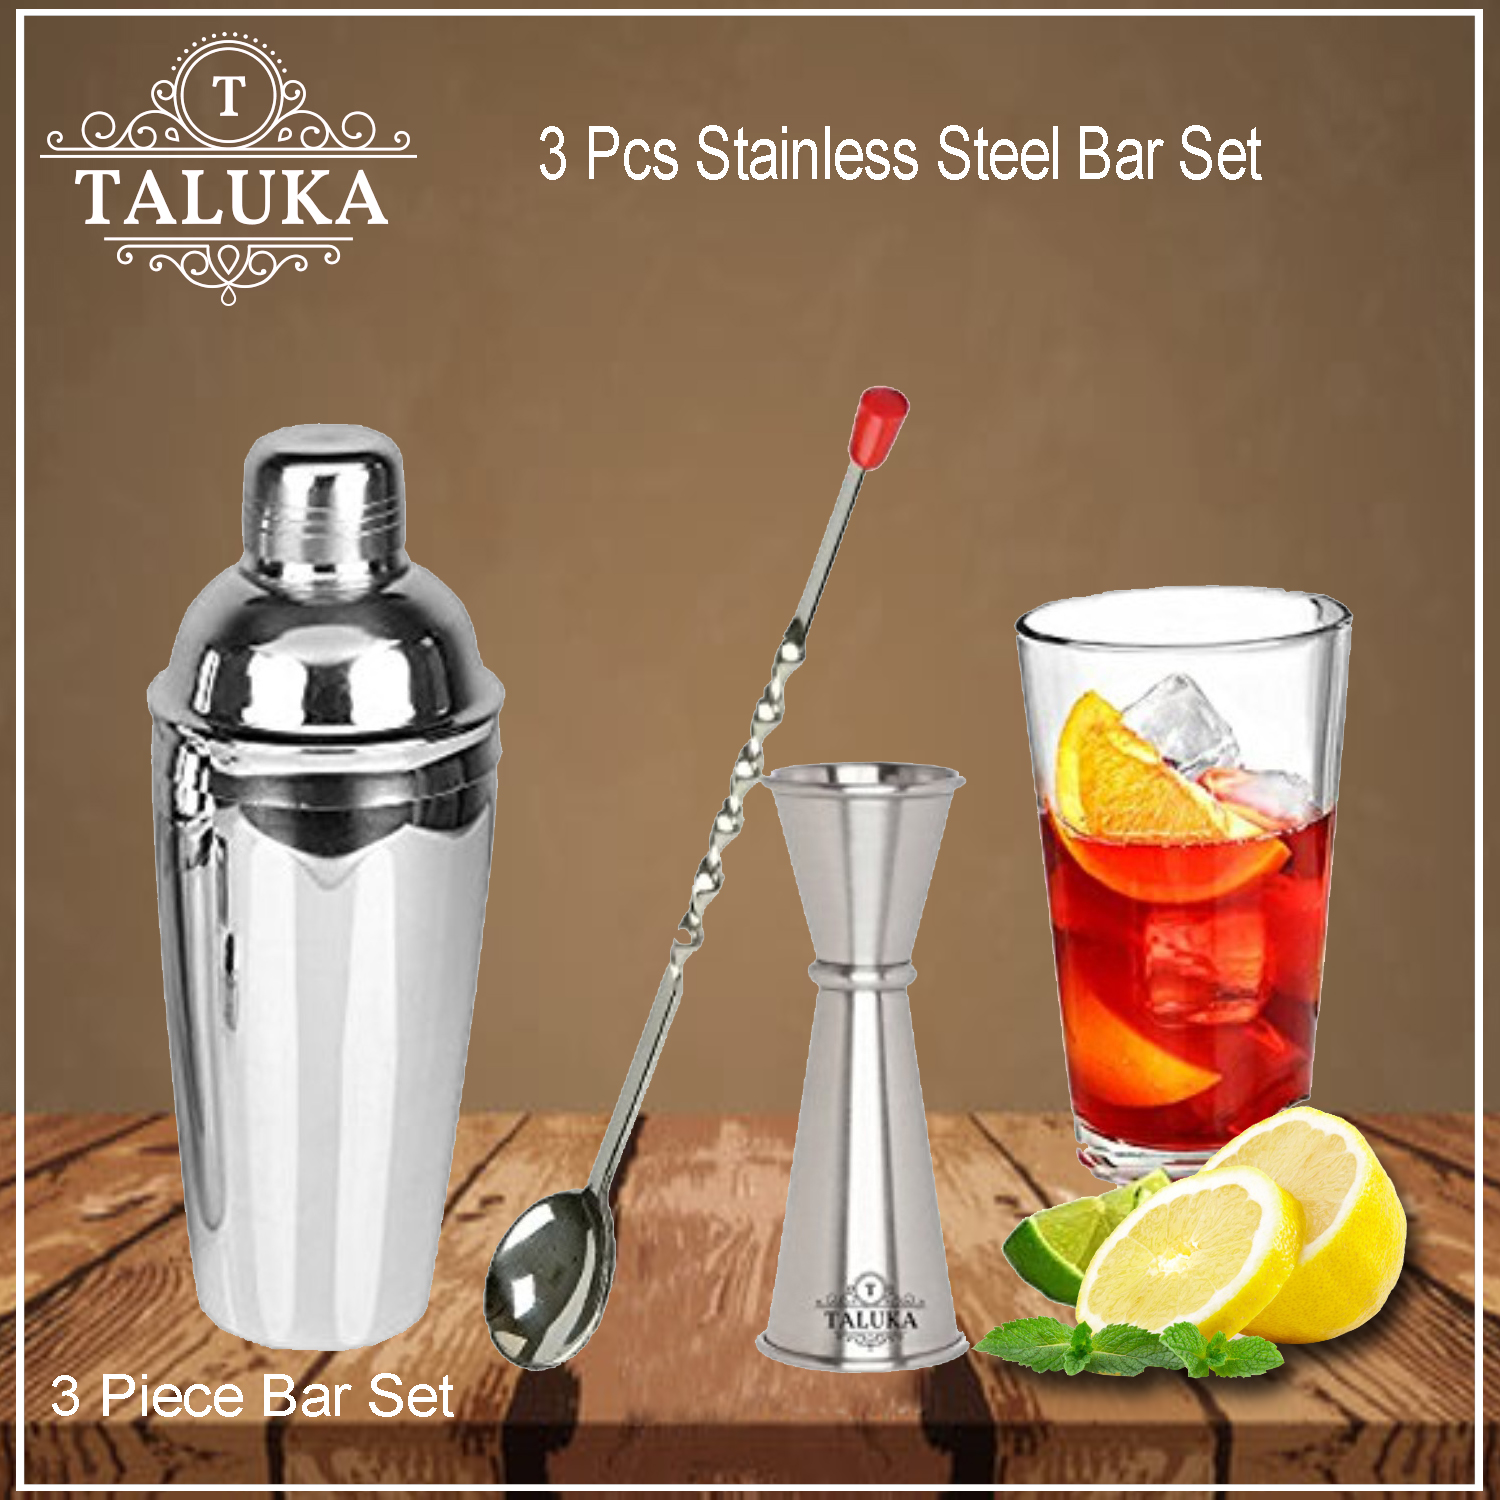 Stainless Steel Wine and Cocktail Bar Set 3 Piece Combination Bar Tools Set